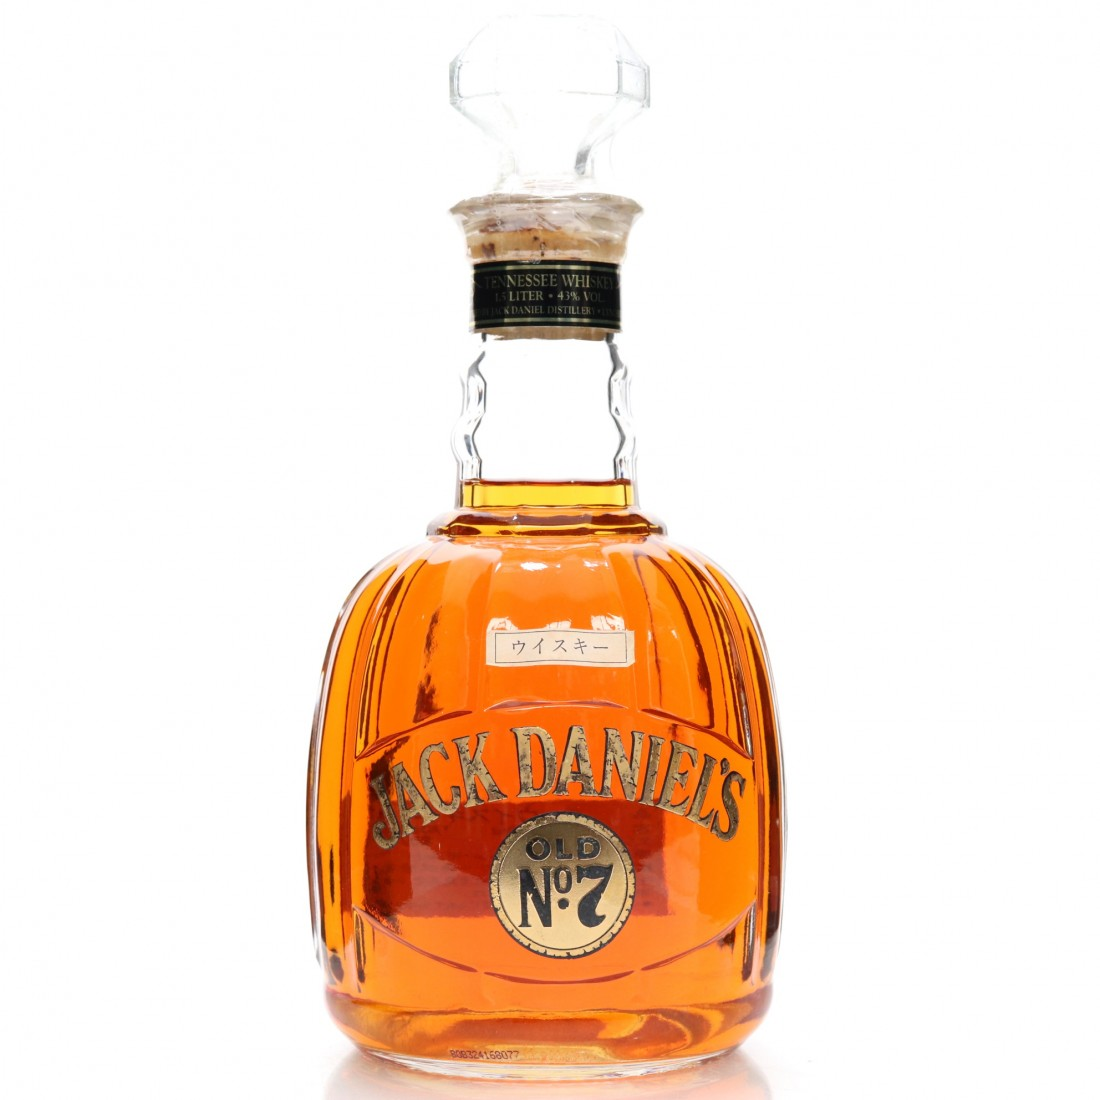 Jack Daniel's Old No.7 Maxwell House 1.5 Litre